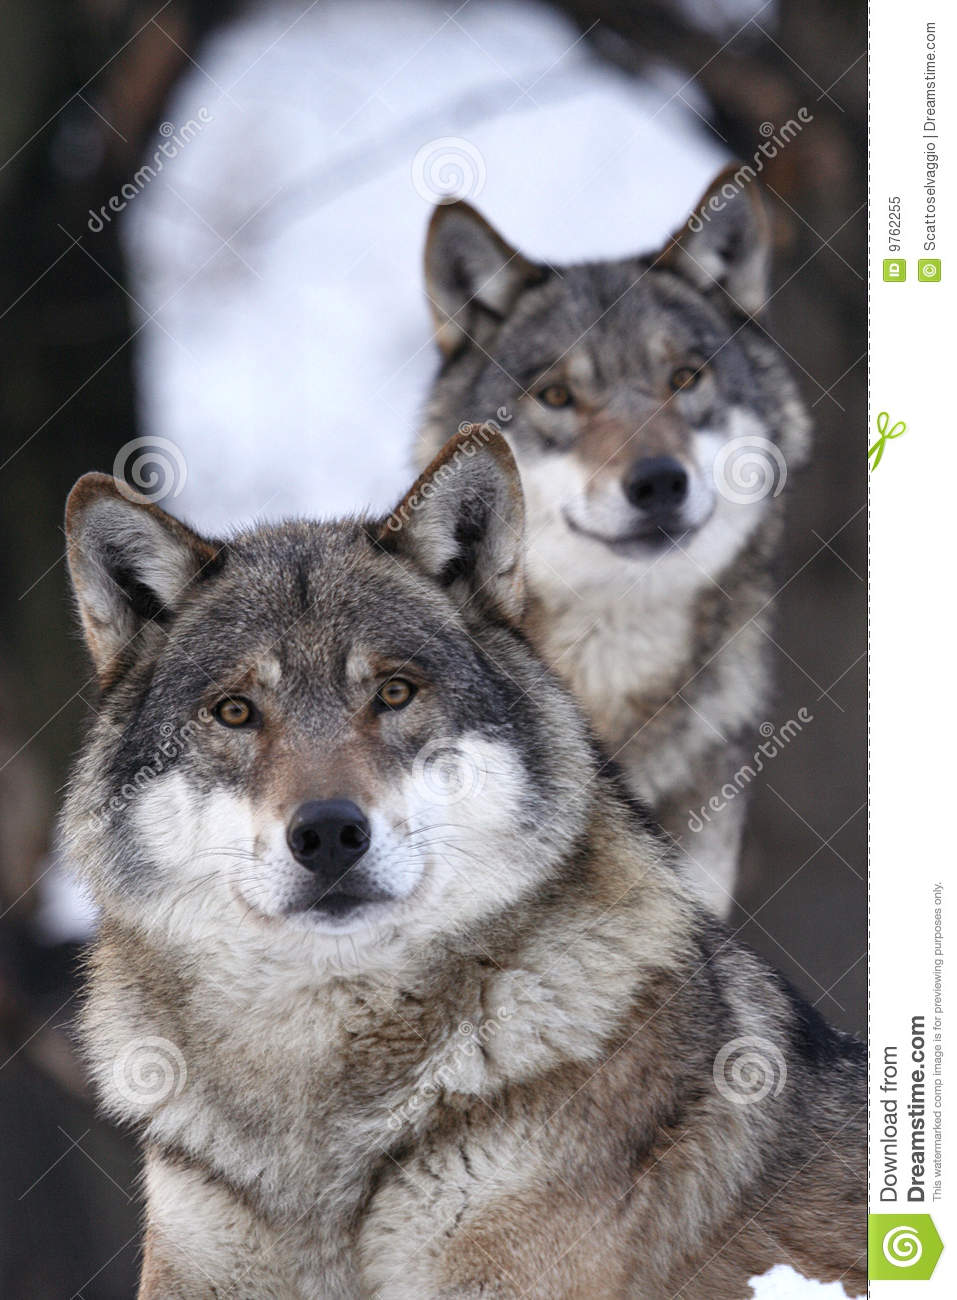 Wolf Wallpaper Hd Grey Wolf Canis Lupus Stock Image Image Of Interested